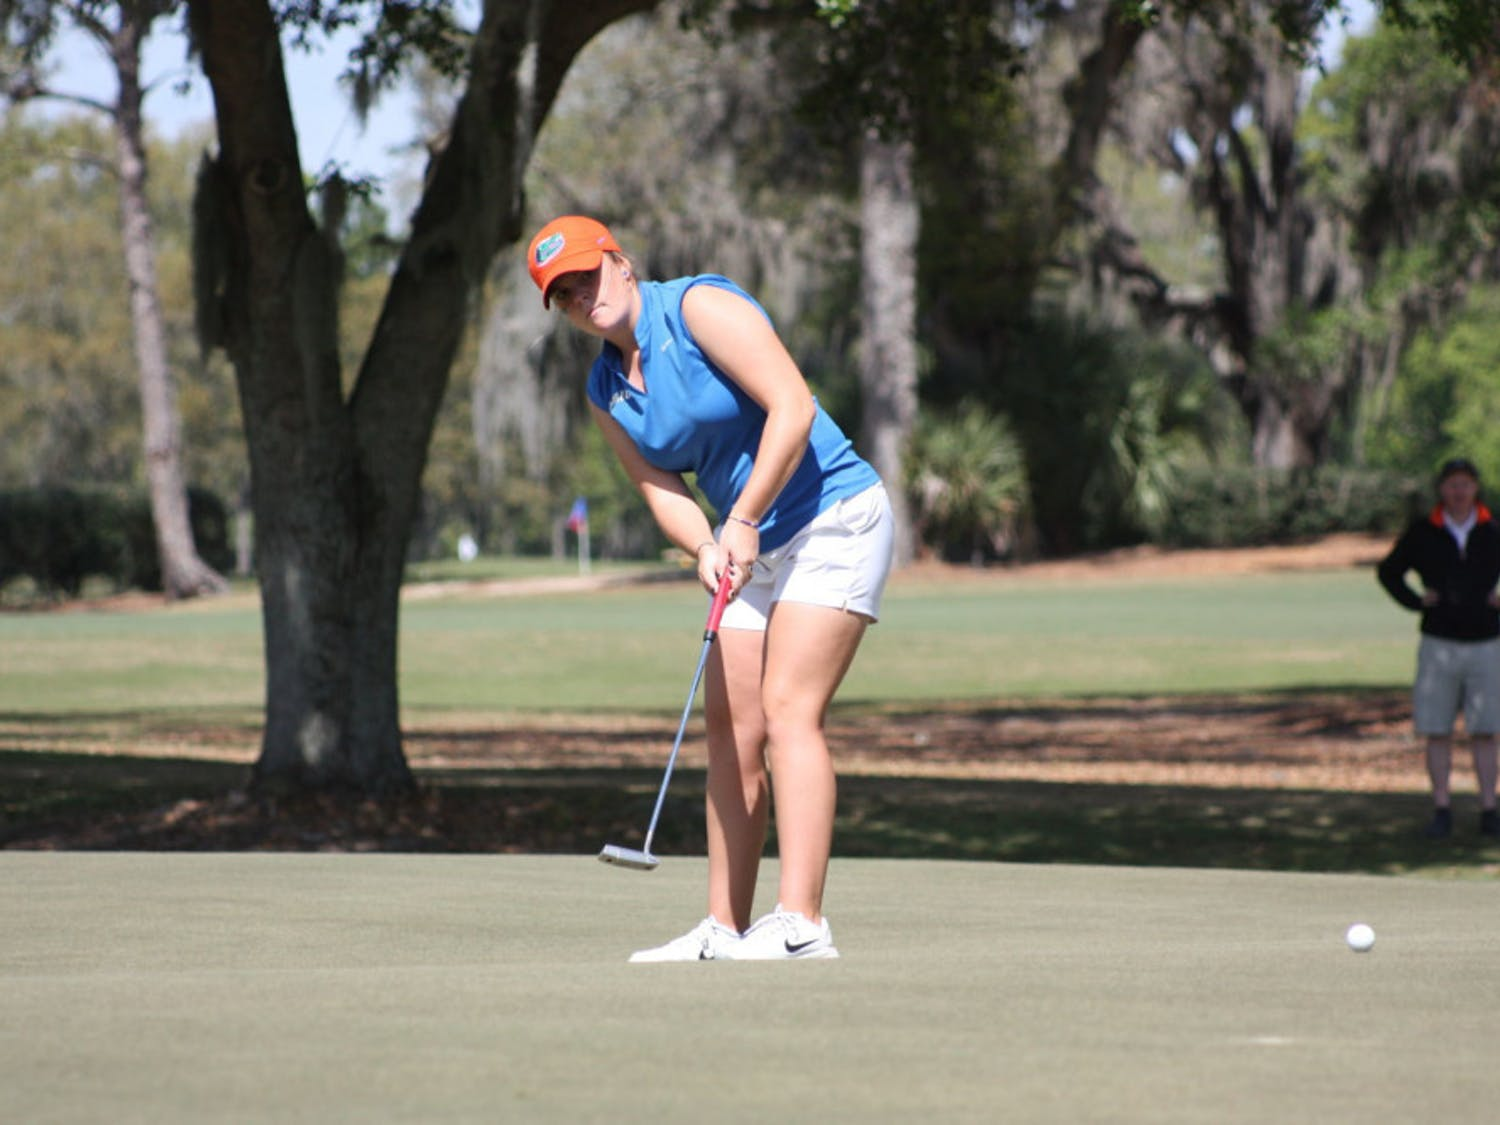 Junior Marta Perez finished the Florida Gators Invitational with an overall score of even par. The Gators women's golf team won the tournament for the fourth-straight season.